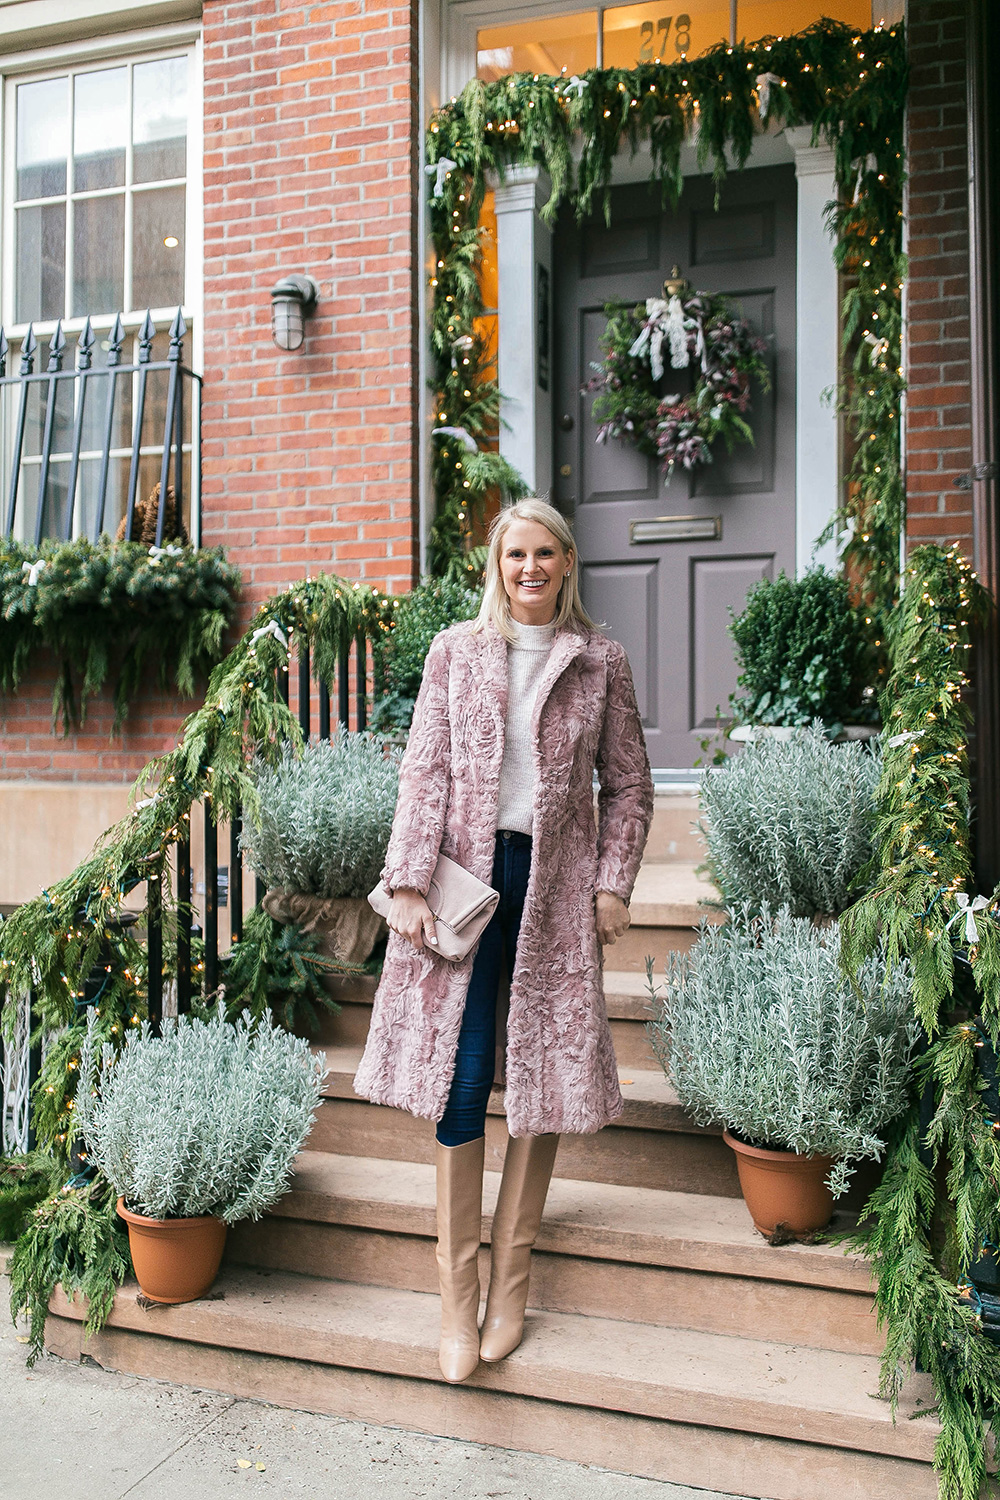 Adrienna Landau Shearling Coat | Dallas Fashion Bloggers